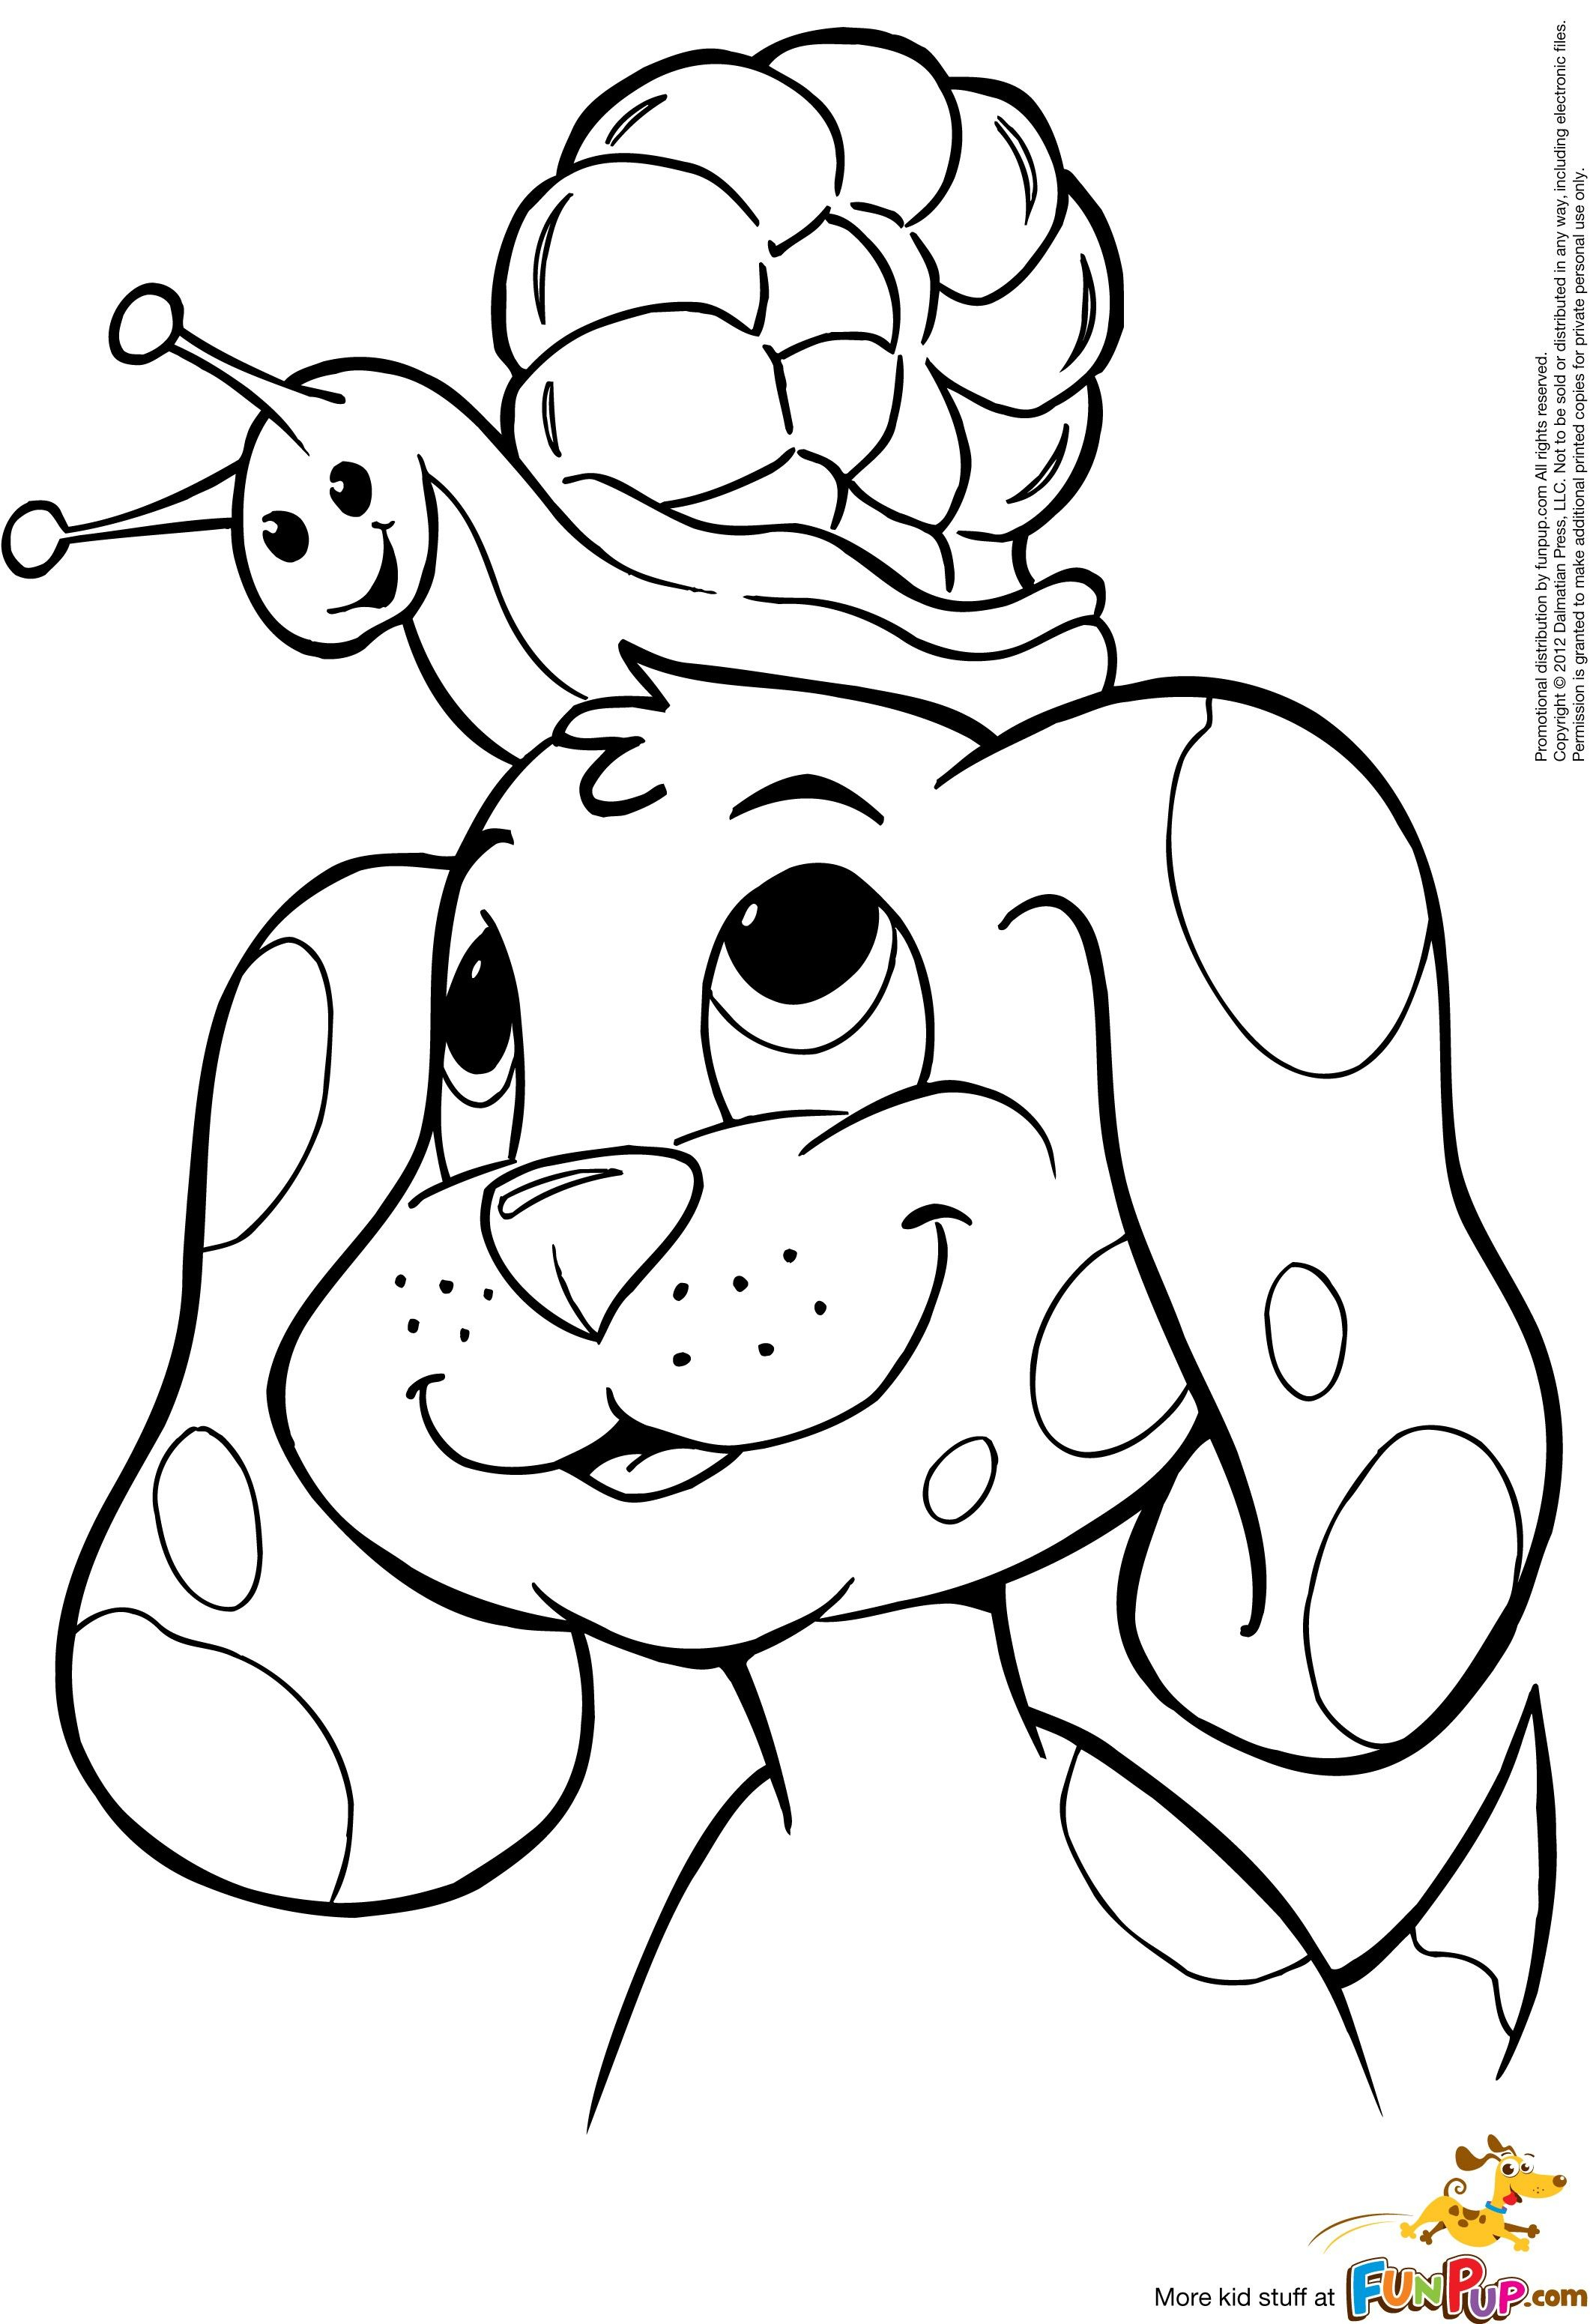 Printable Puppy Coloring Pages - Animal | Kids | Pinterest | Puppy - Free Coloring Pages Animals Printable